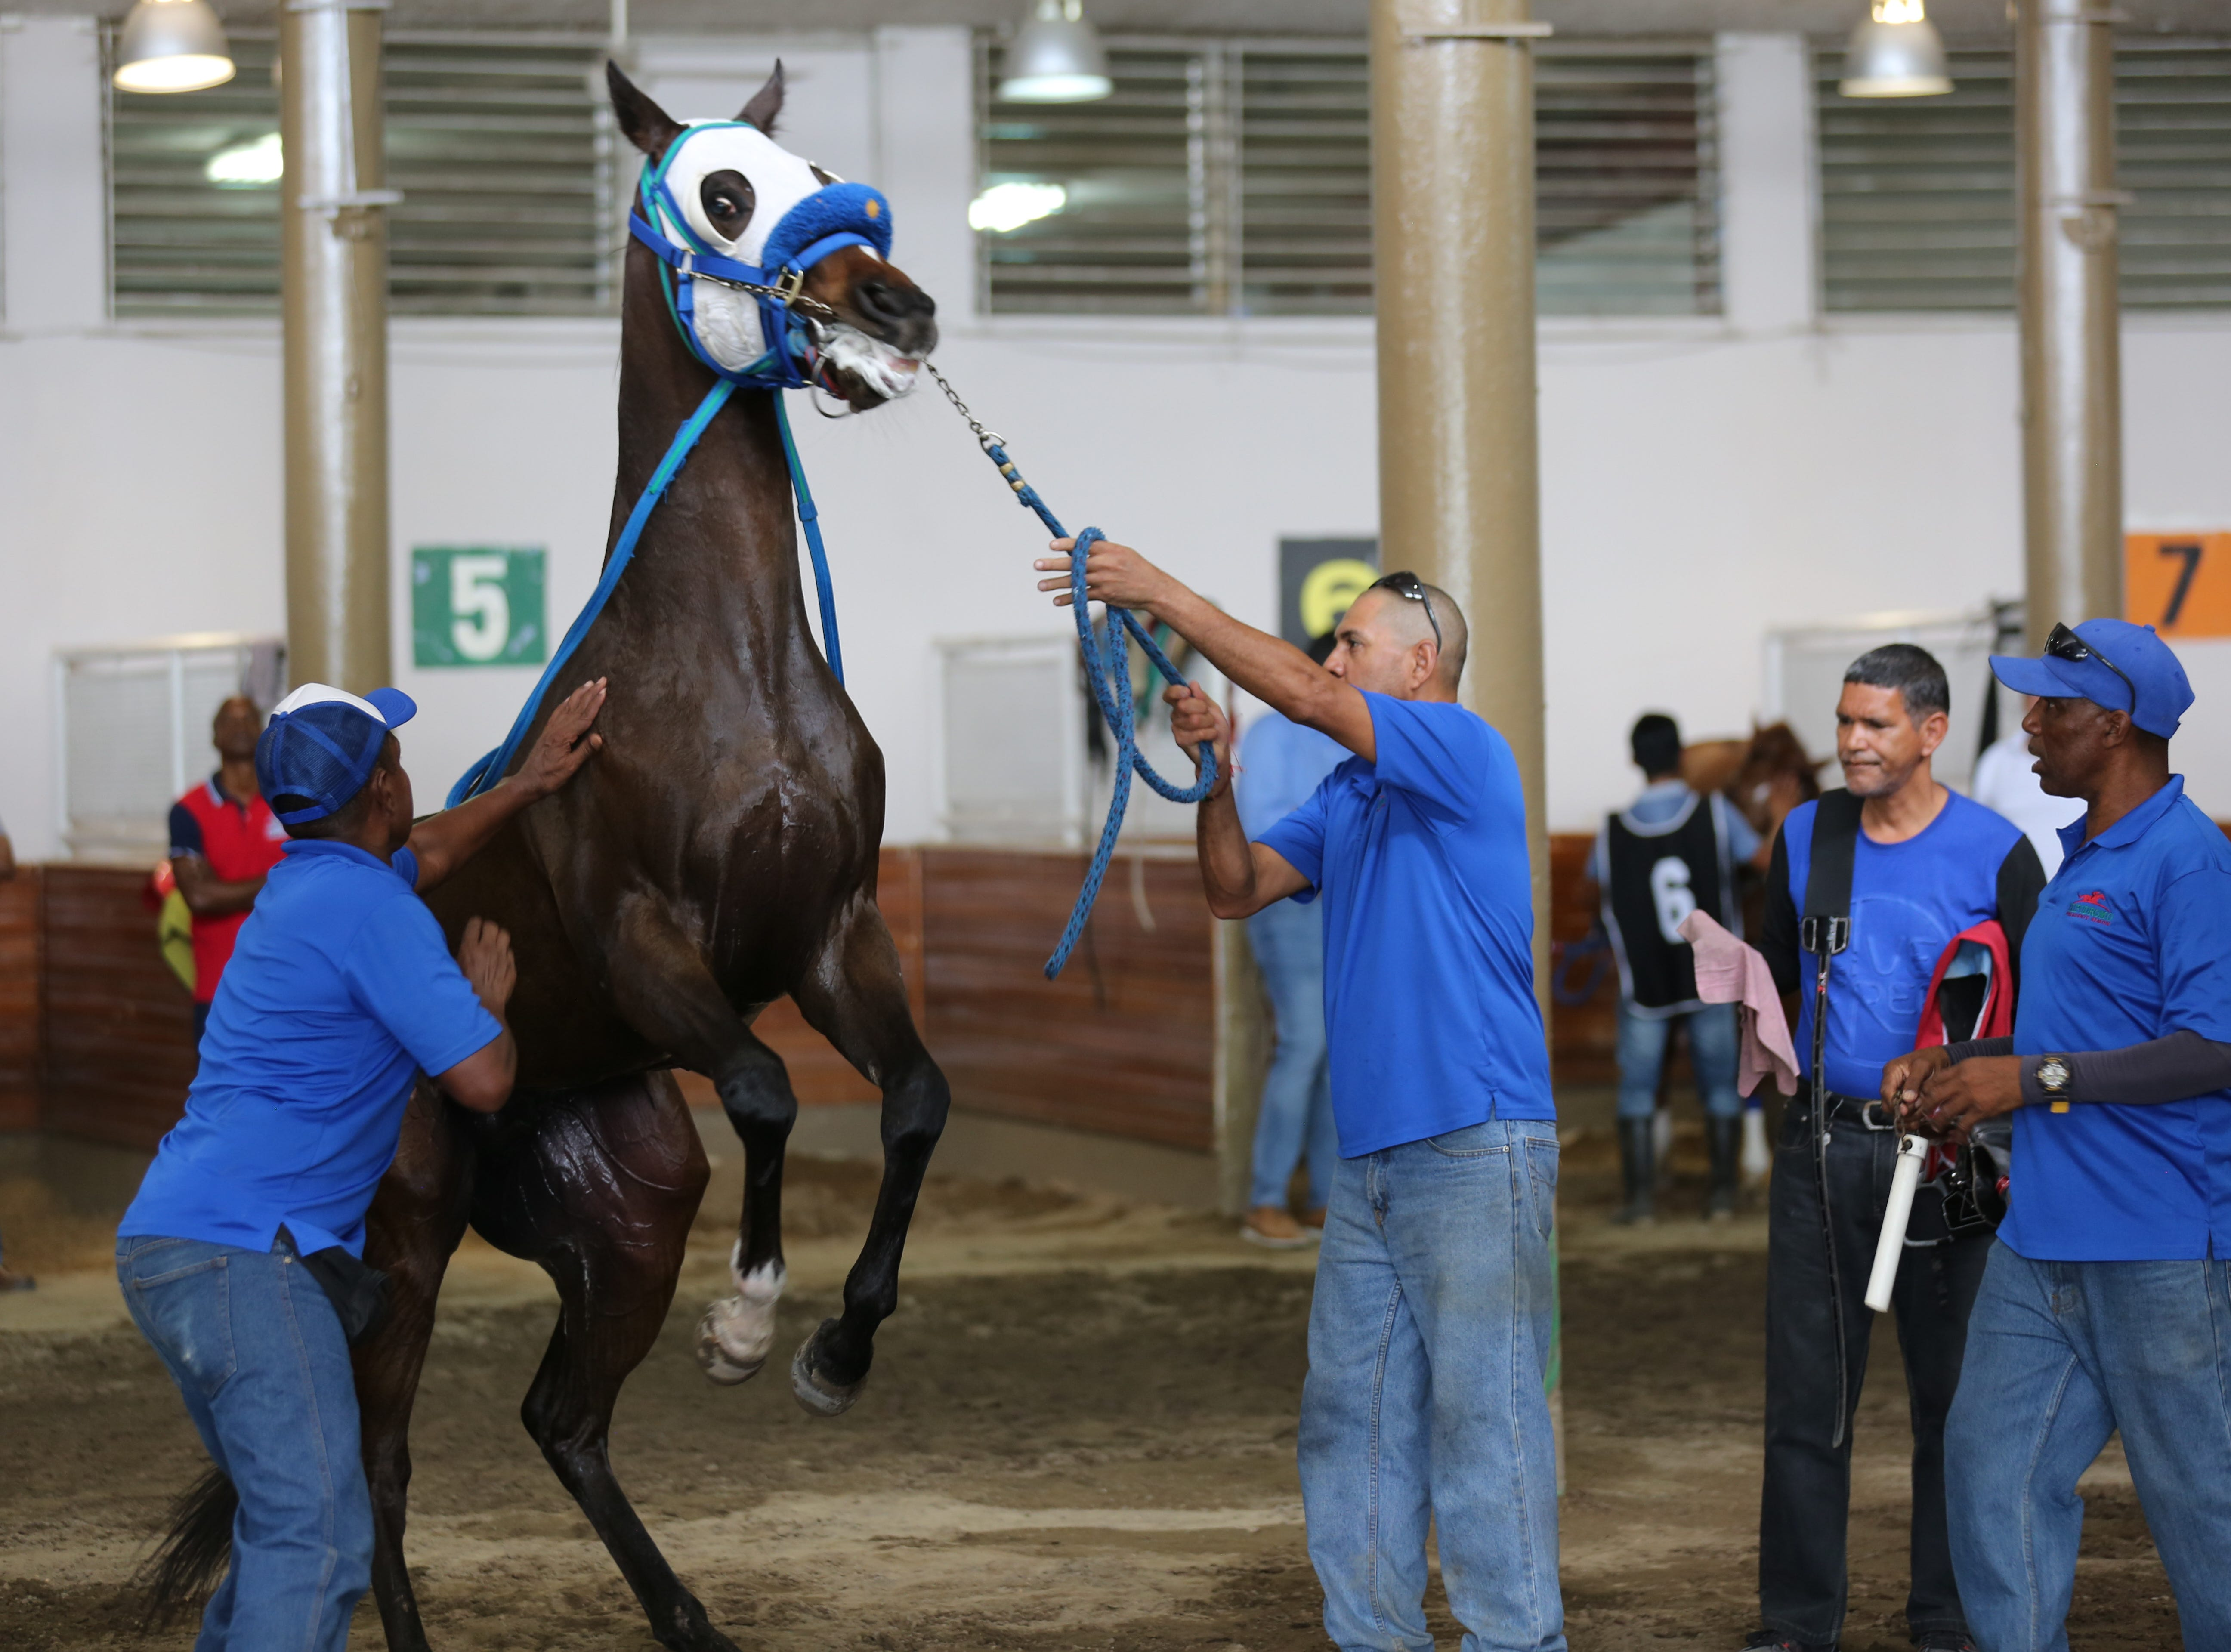 The Laffit Pincay Jr. Technical Jockey Training Academy has trained top thoroughbred riders, including Kentucky Derby winners, for decades in Panama.